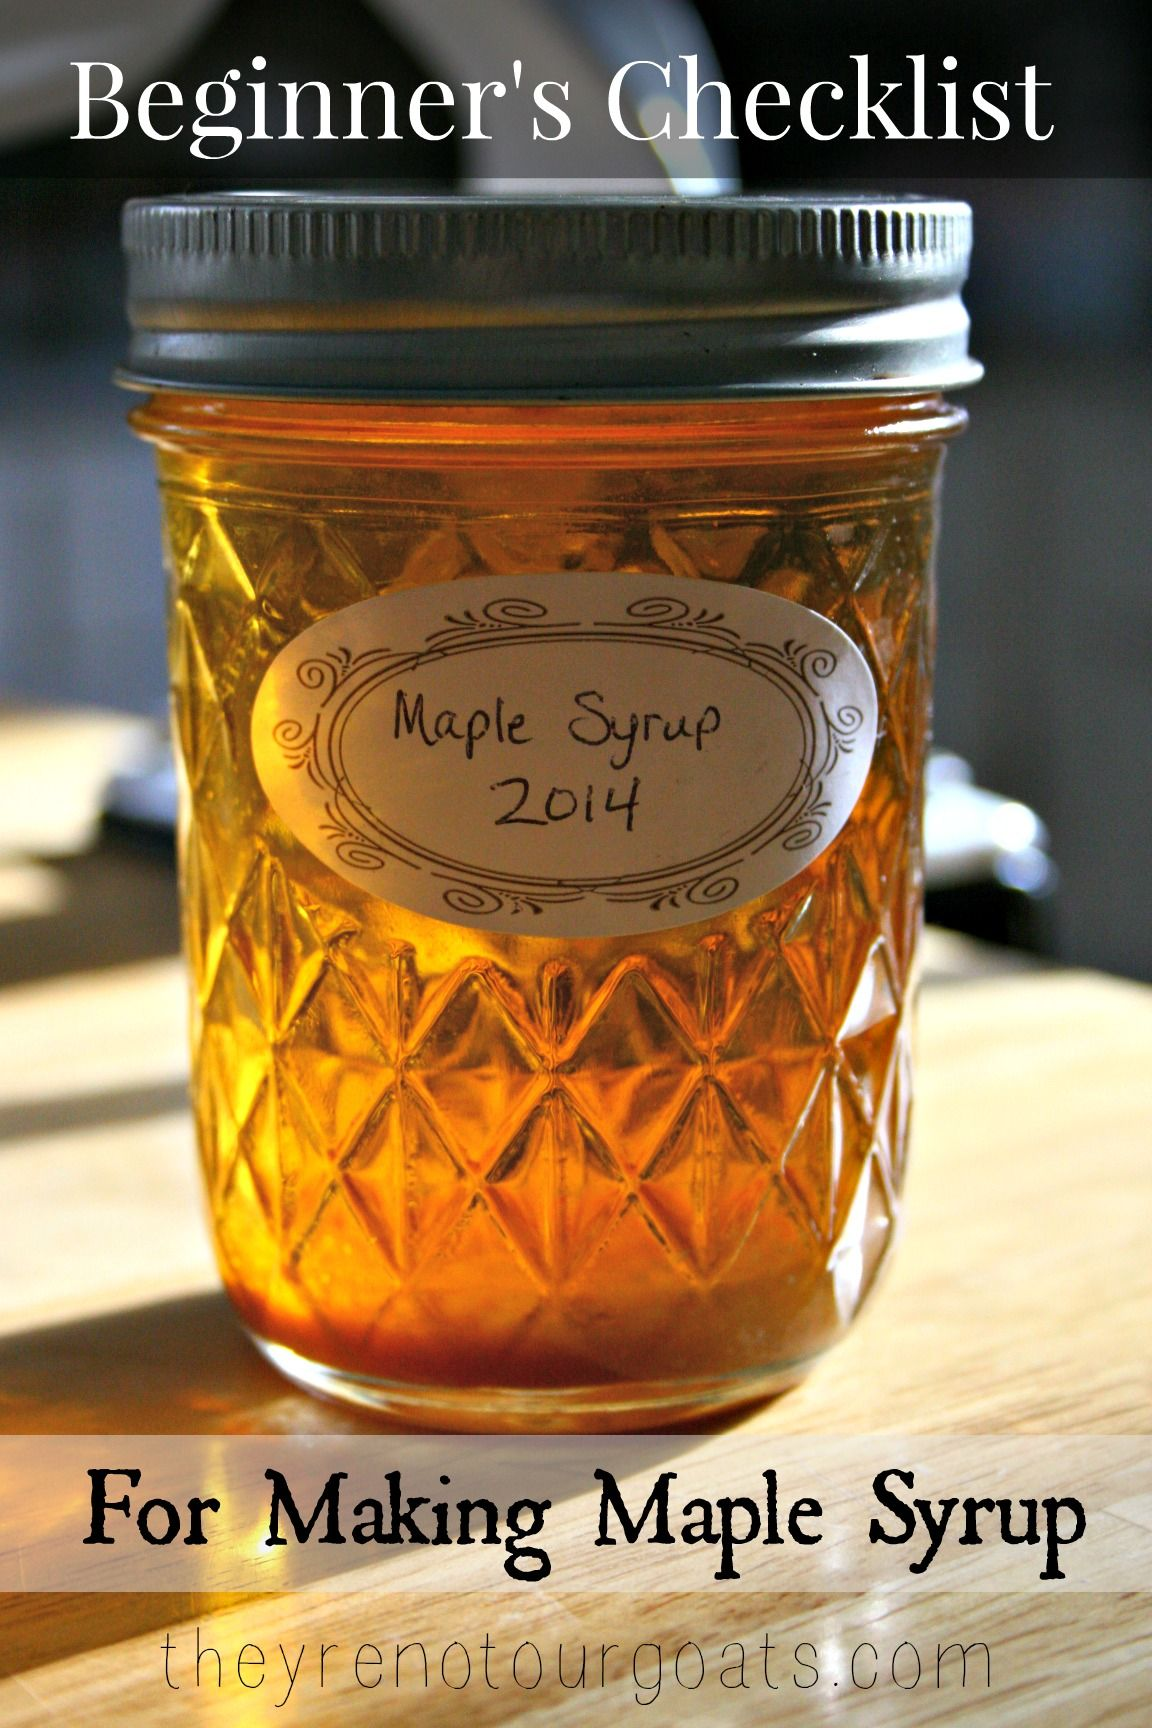 Beginner's Checklist for Making Maple Syrup - They're Not Our Goats